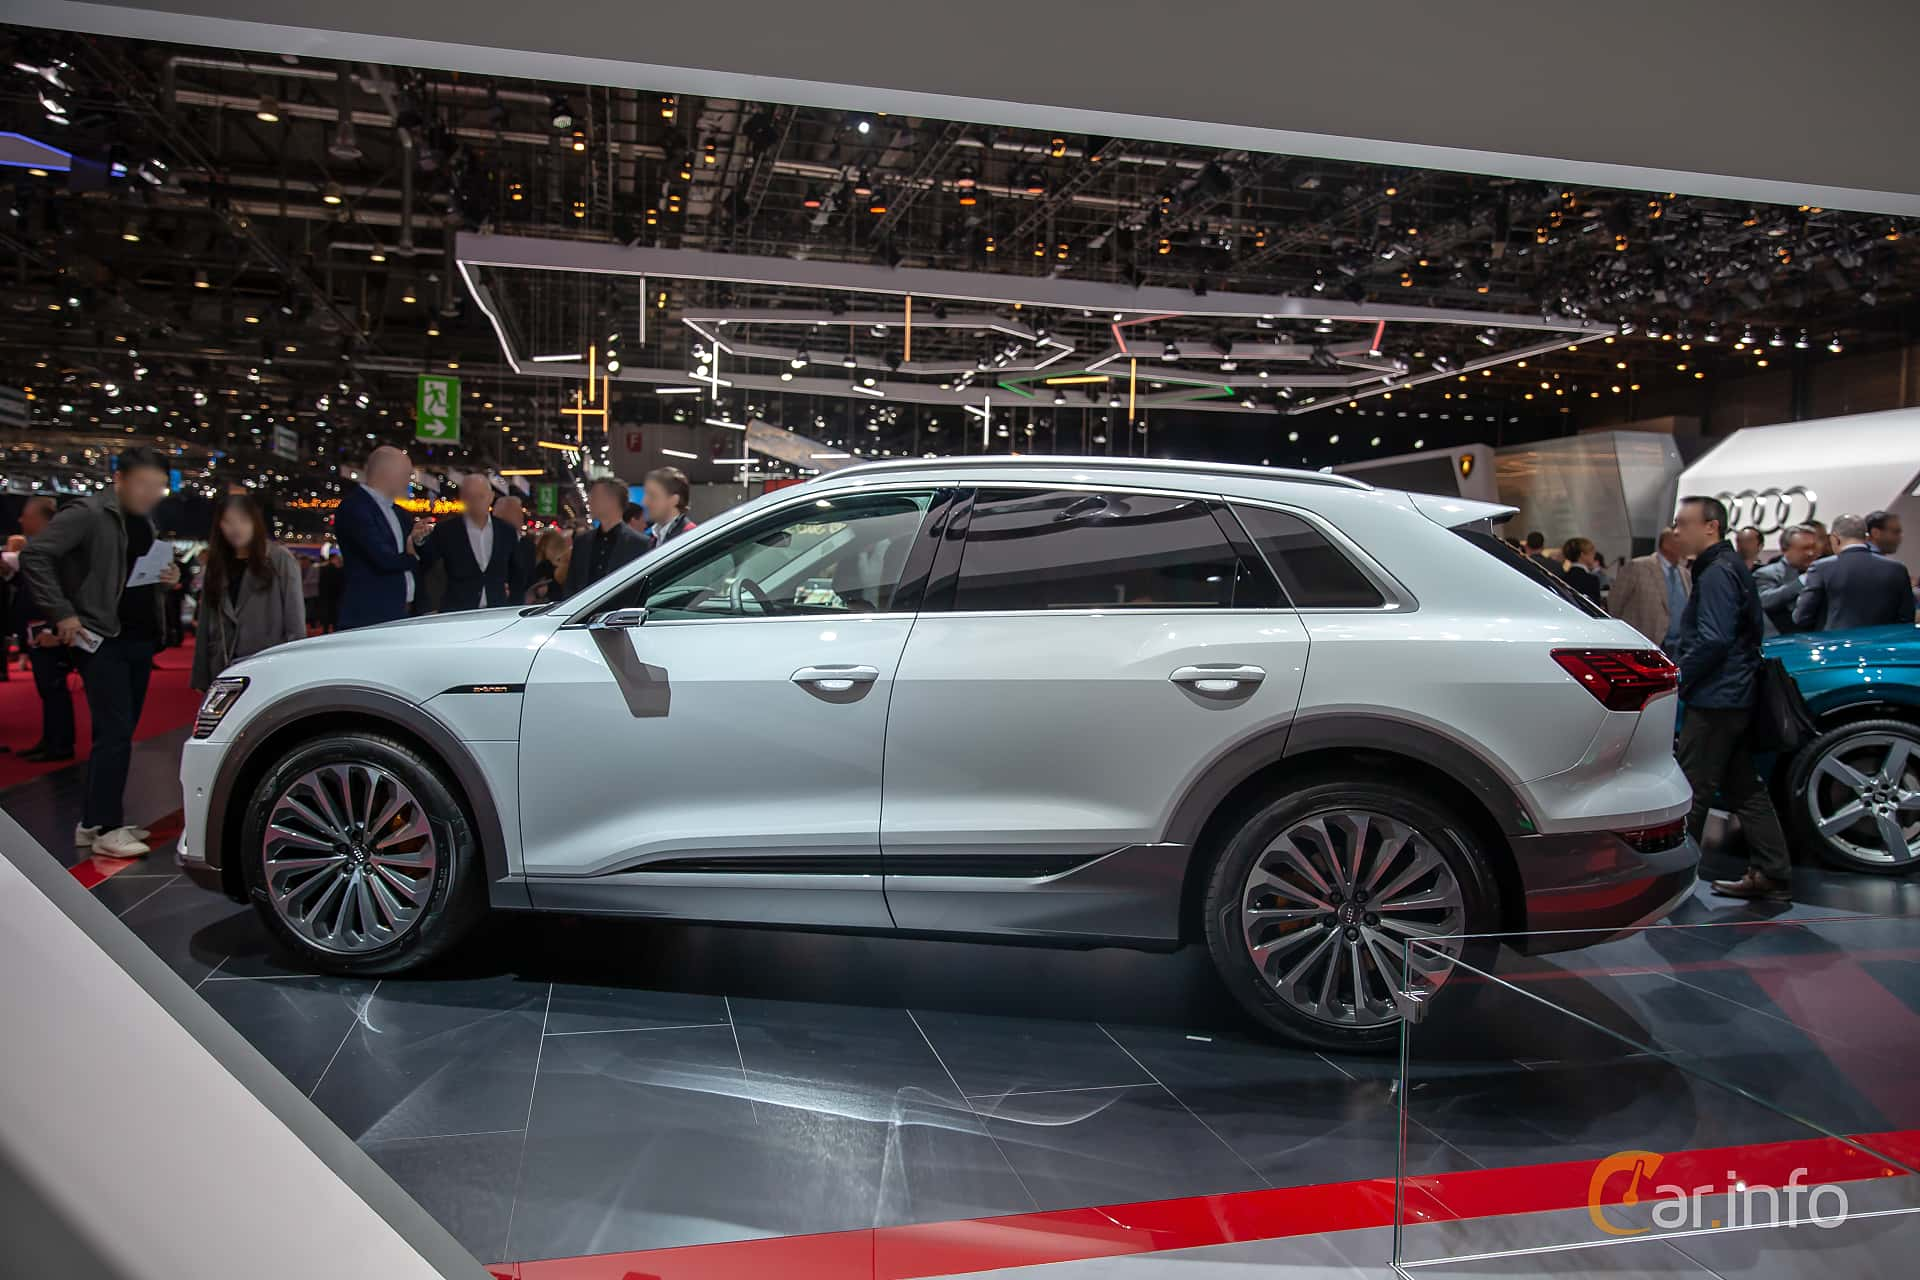 Audi e-tron 55 quattro  Single Speed, 408hp, 2019 at Geneva Motor Show 2019